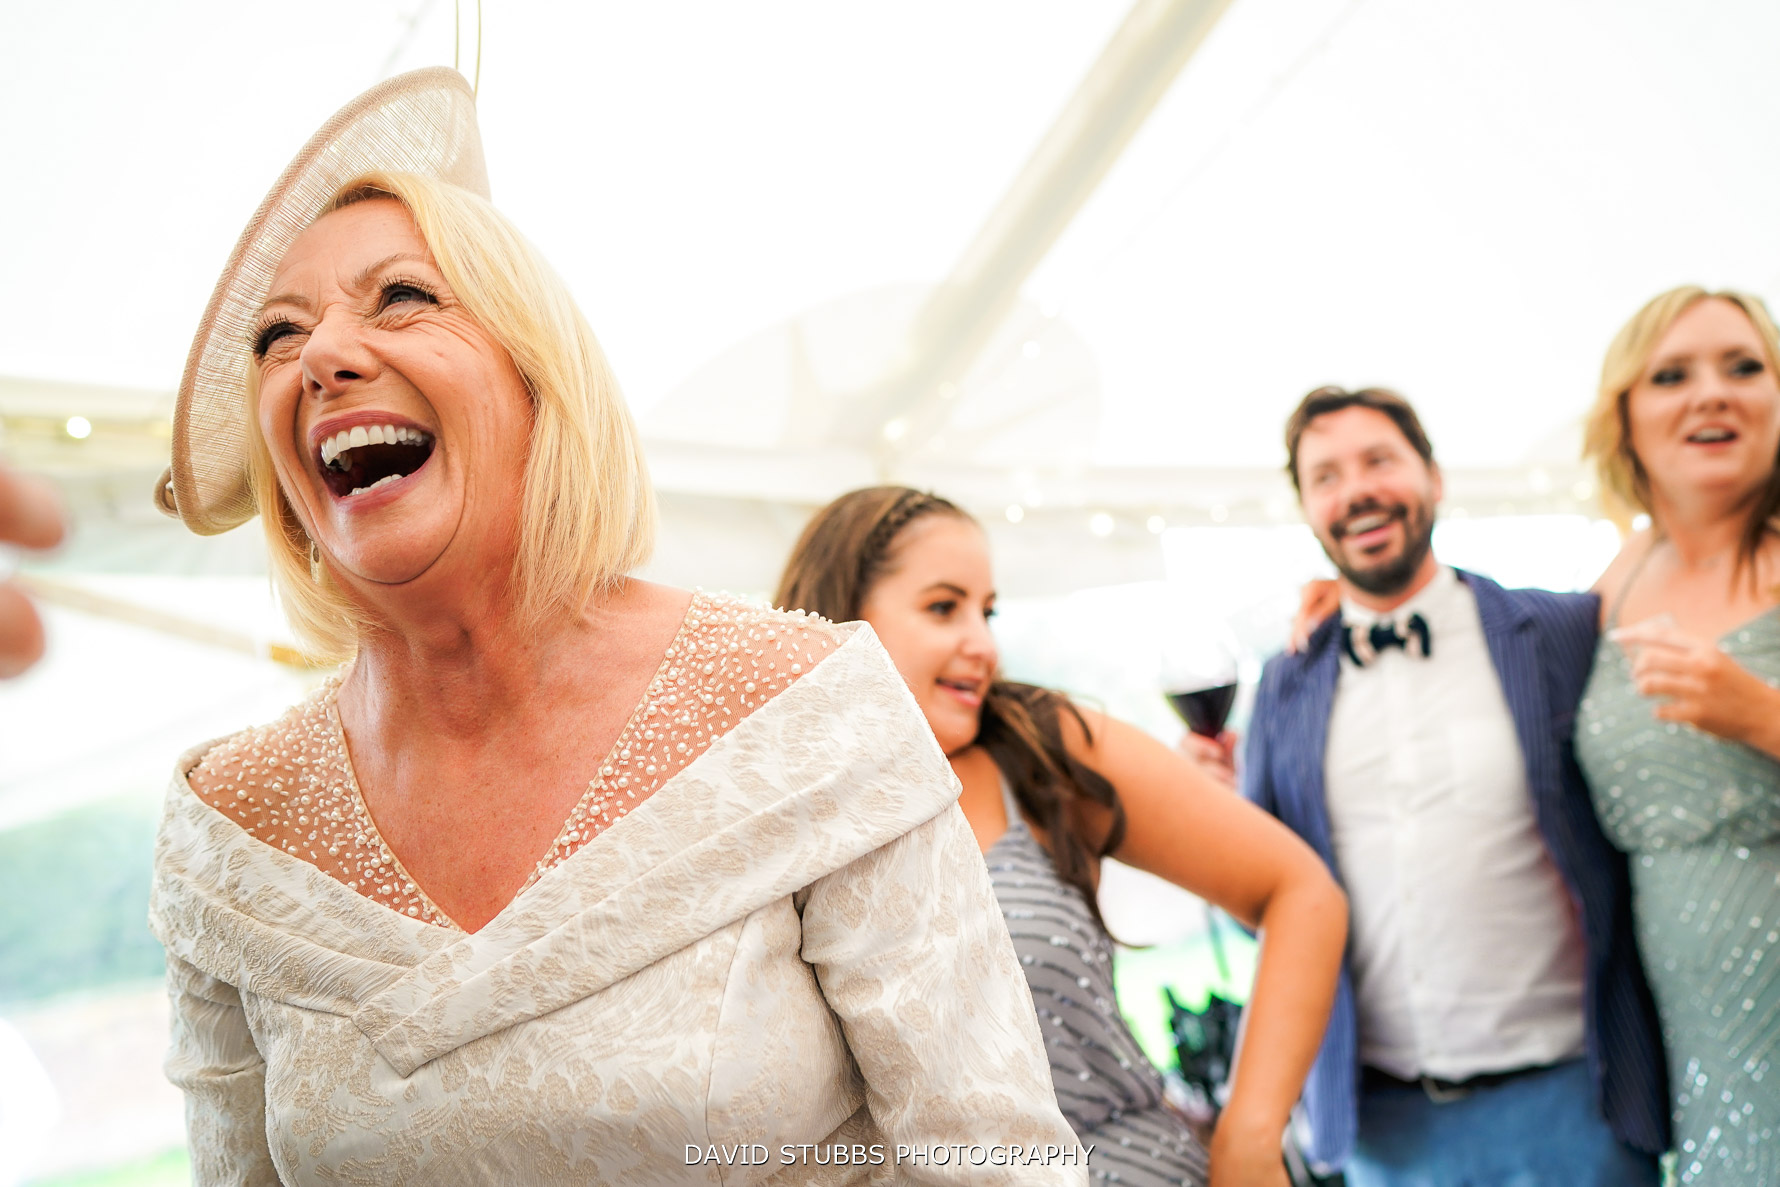 mum having a great time at wedding